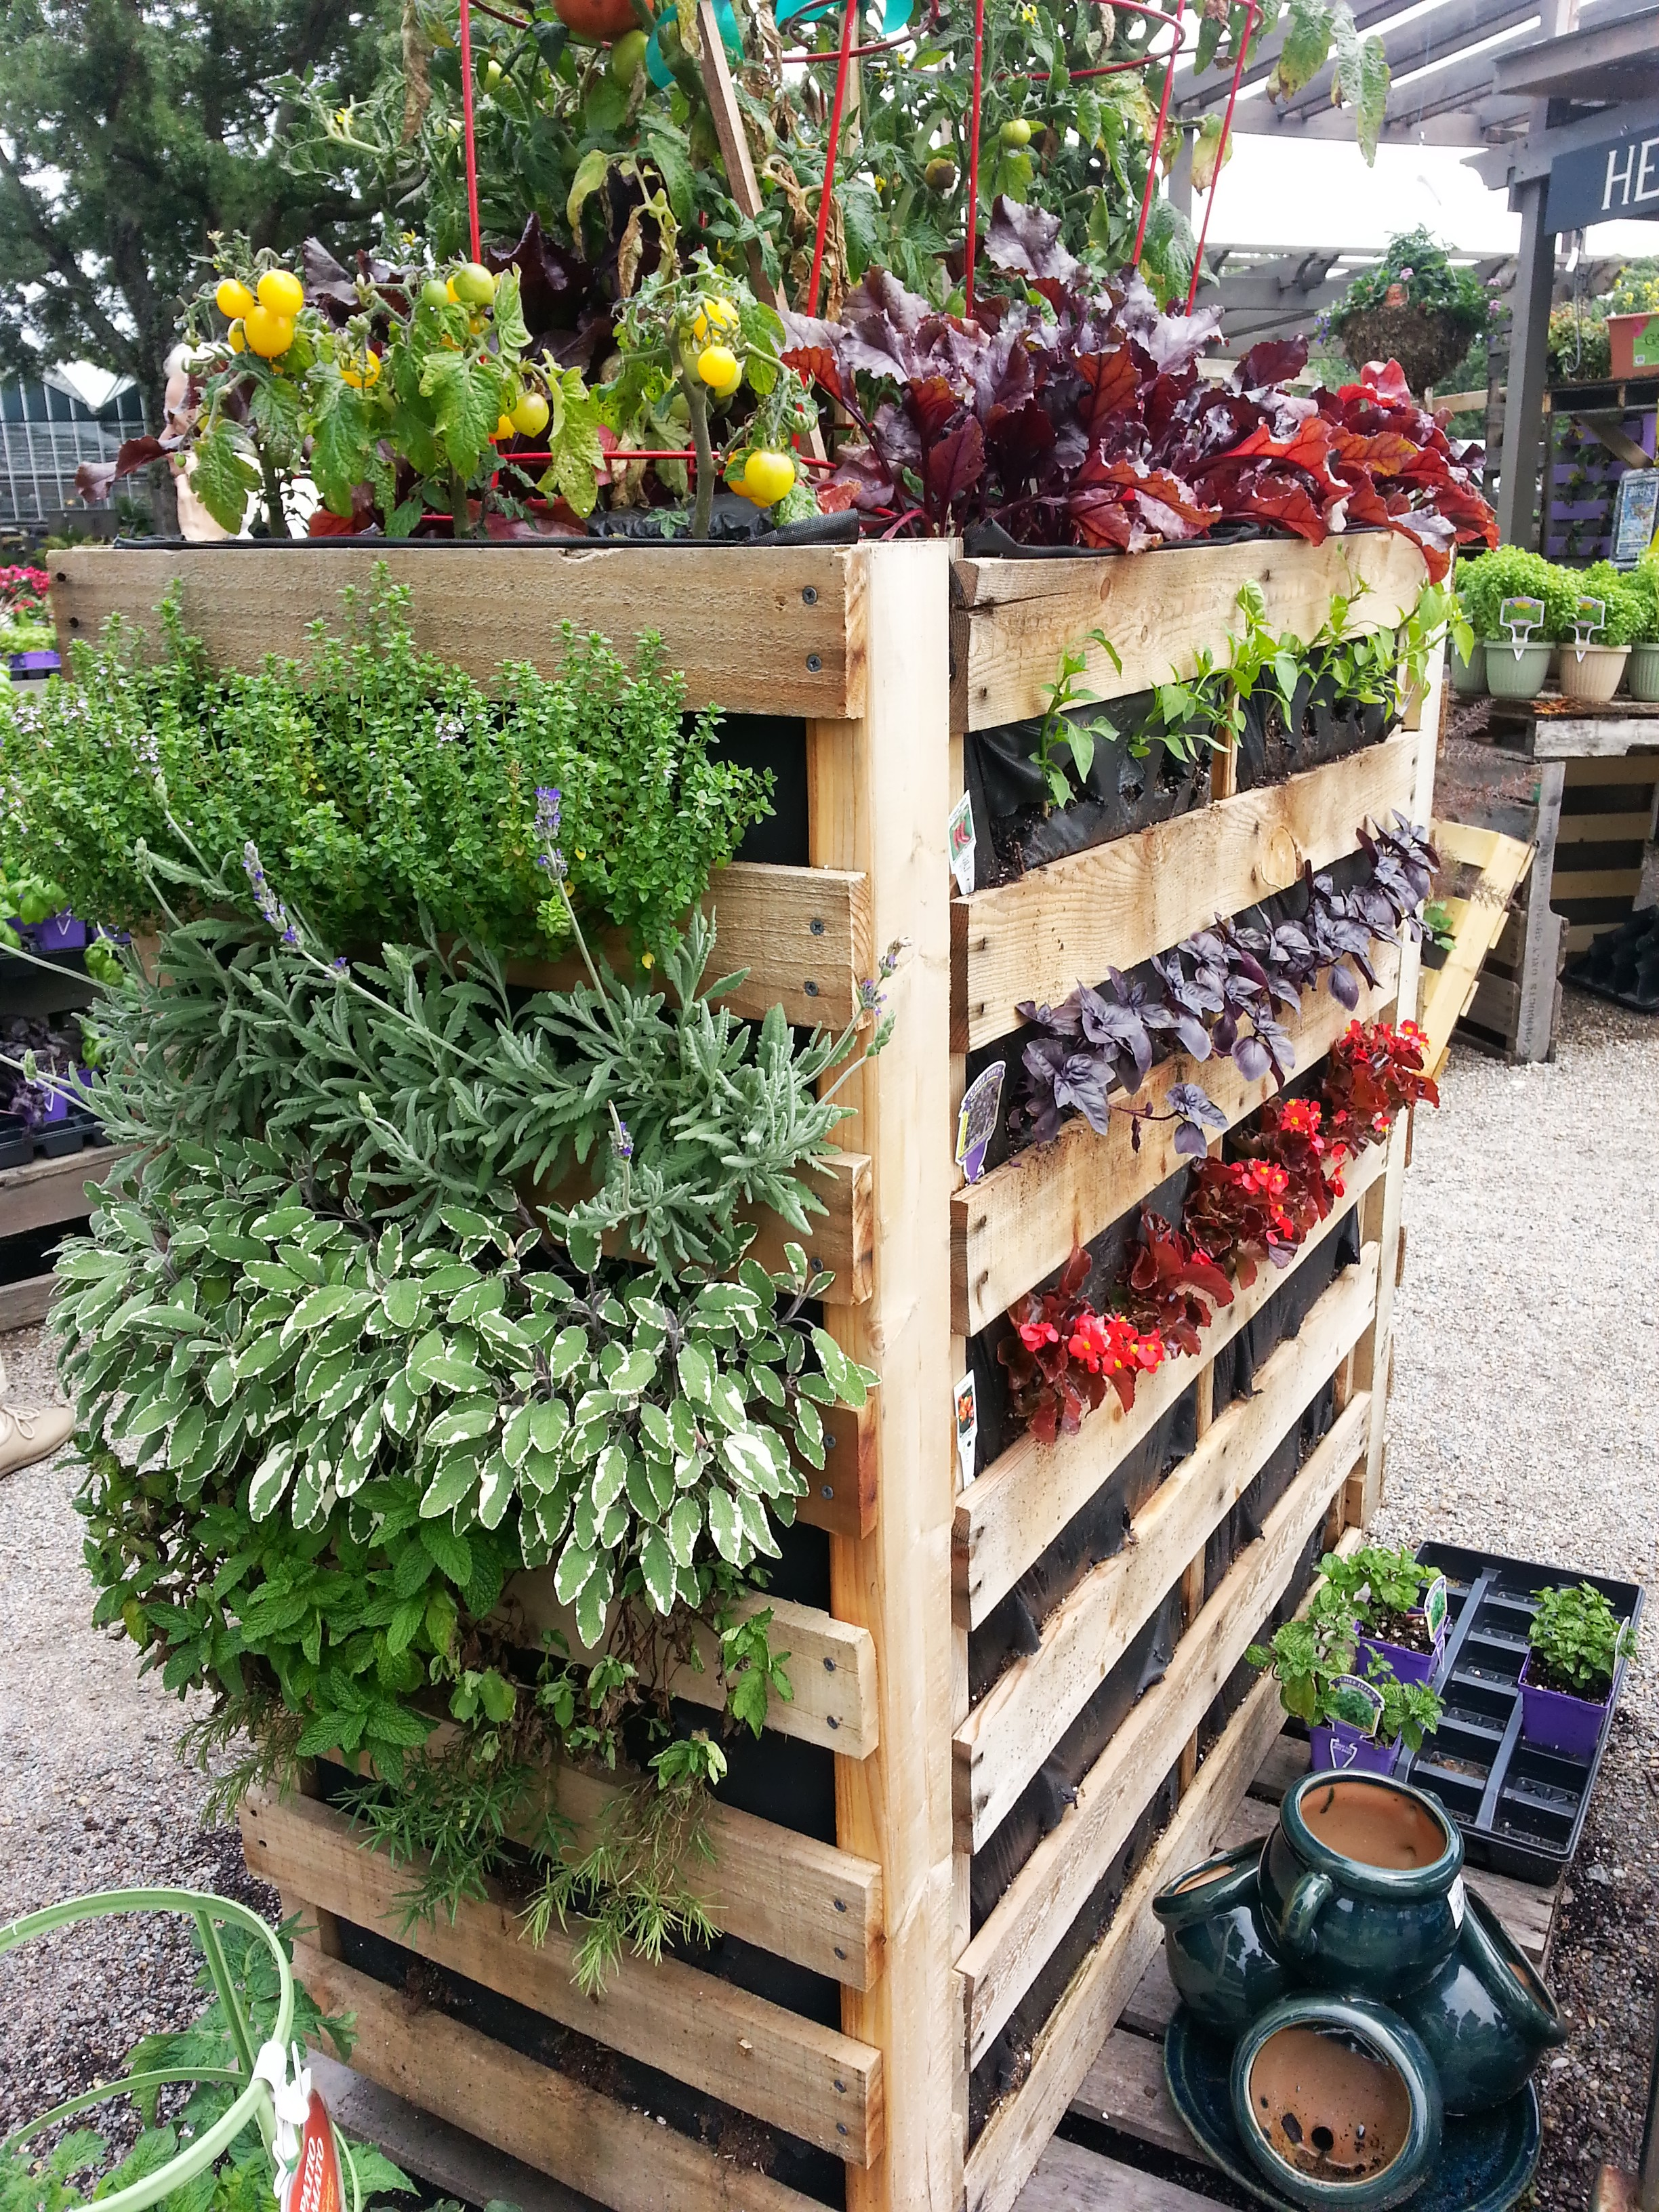 This Is A Pallet Garden Taken To The Next Level And I Love It, Especially  The Room At The Top For Tomatoes. Something Else Iu0027d Like To Make For  Myself.